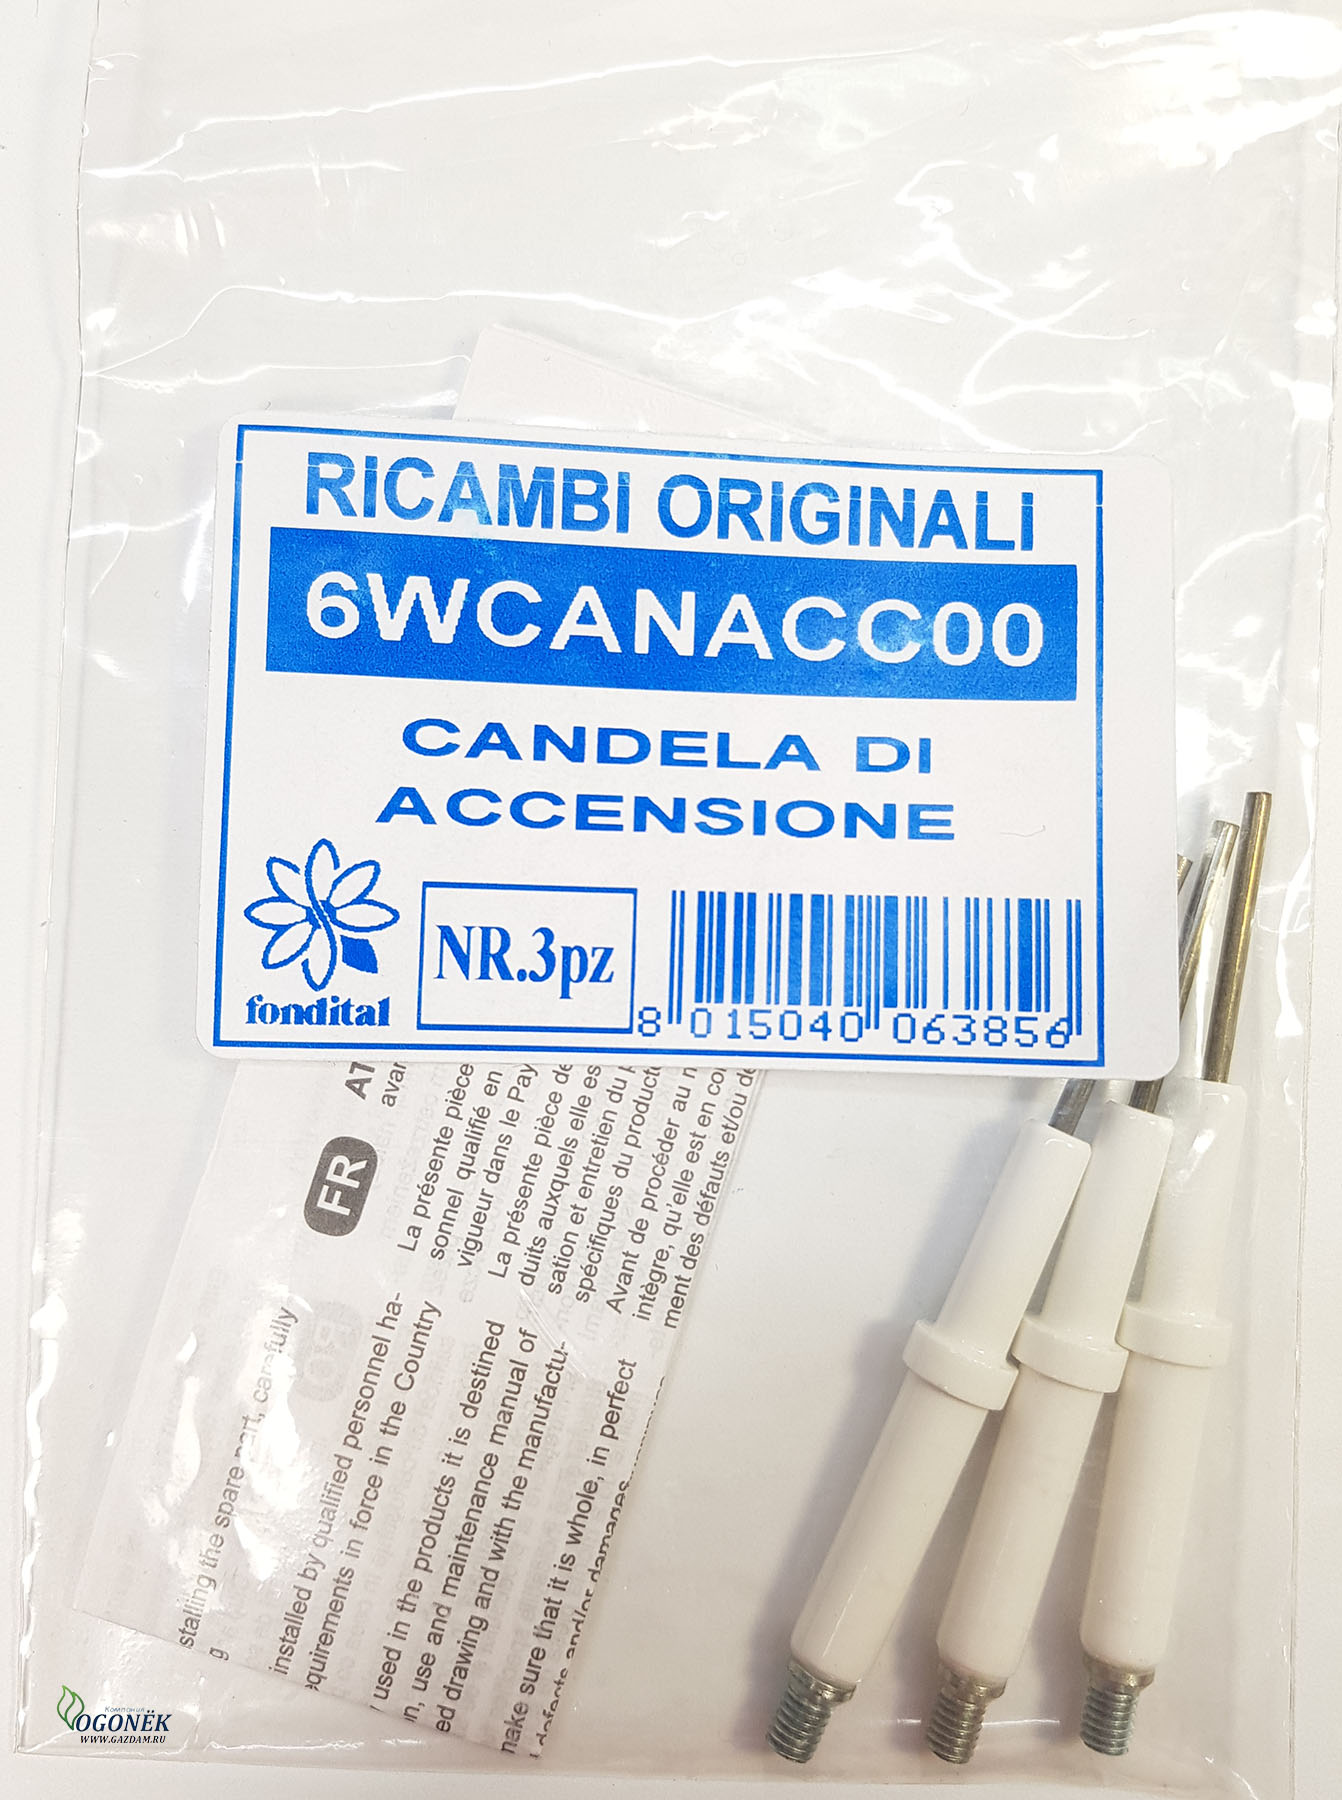 6WCANACC00 ЭЛЕКТРОД РОЗЖИГА CANDELA DI ACCENSIONE